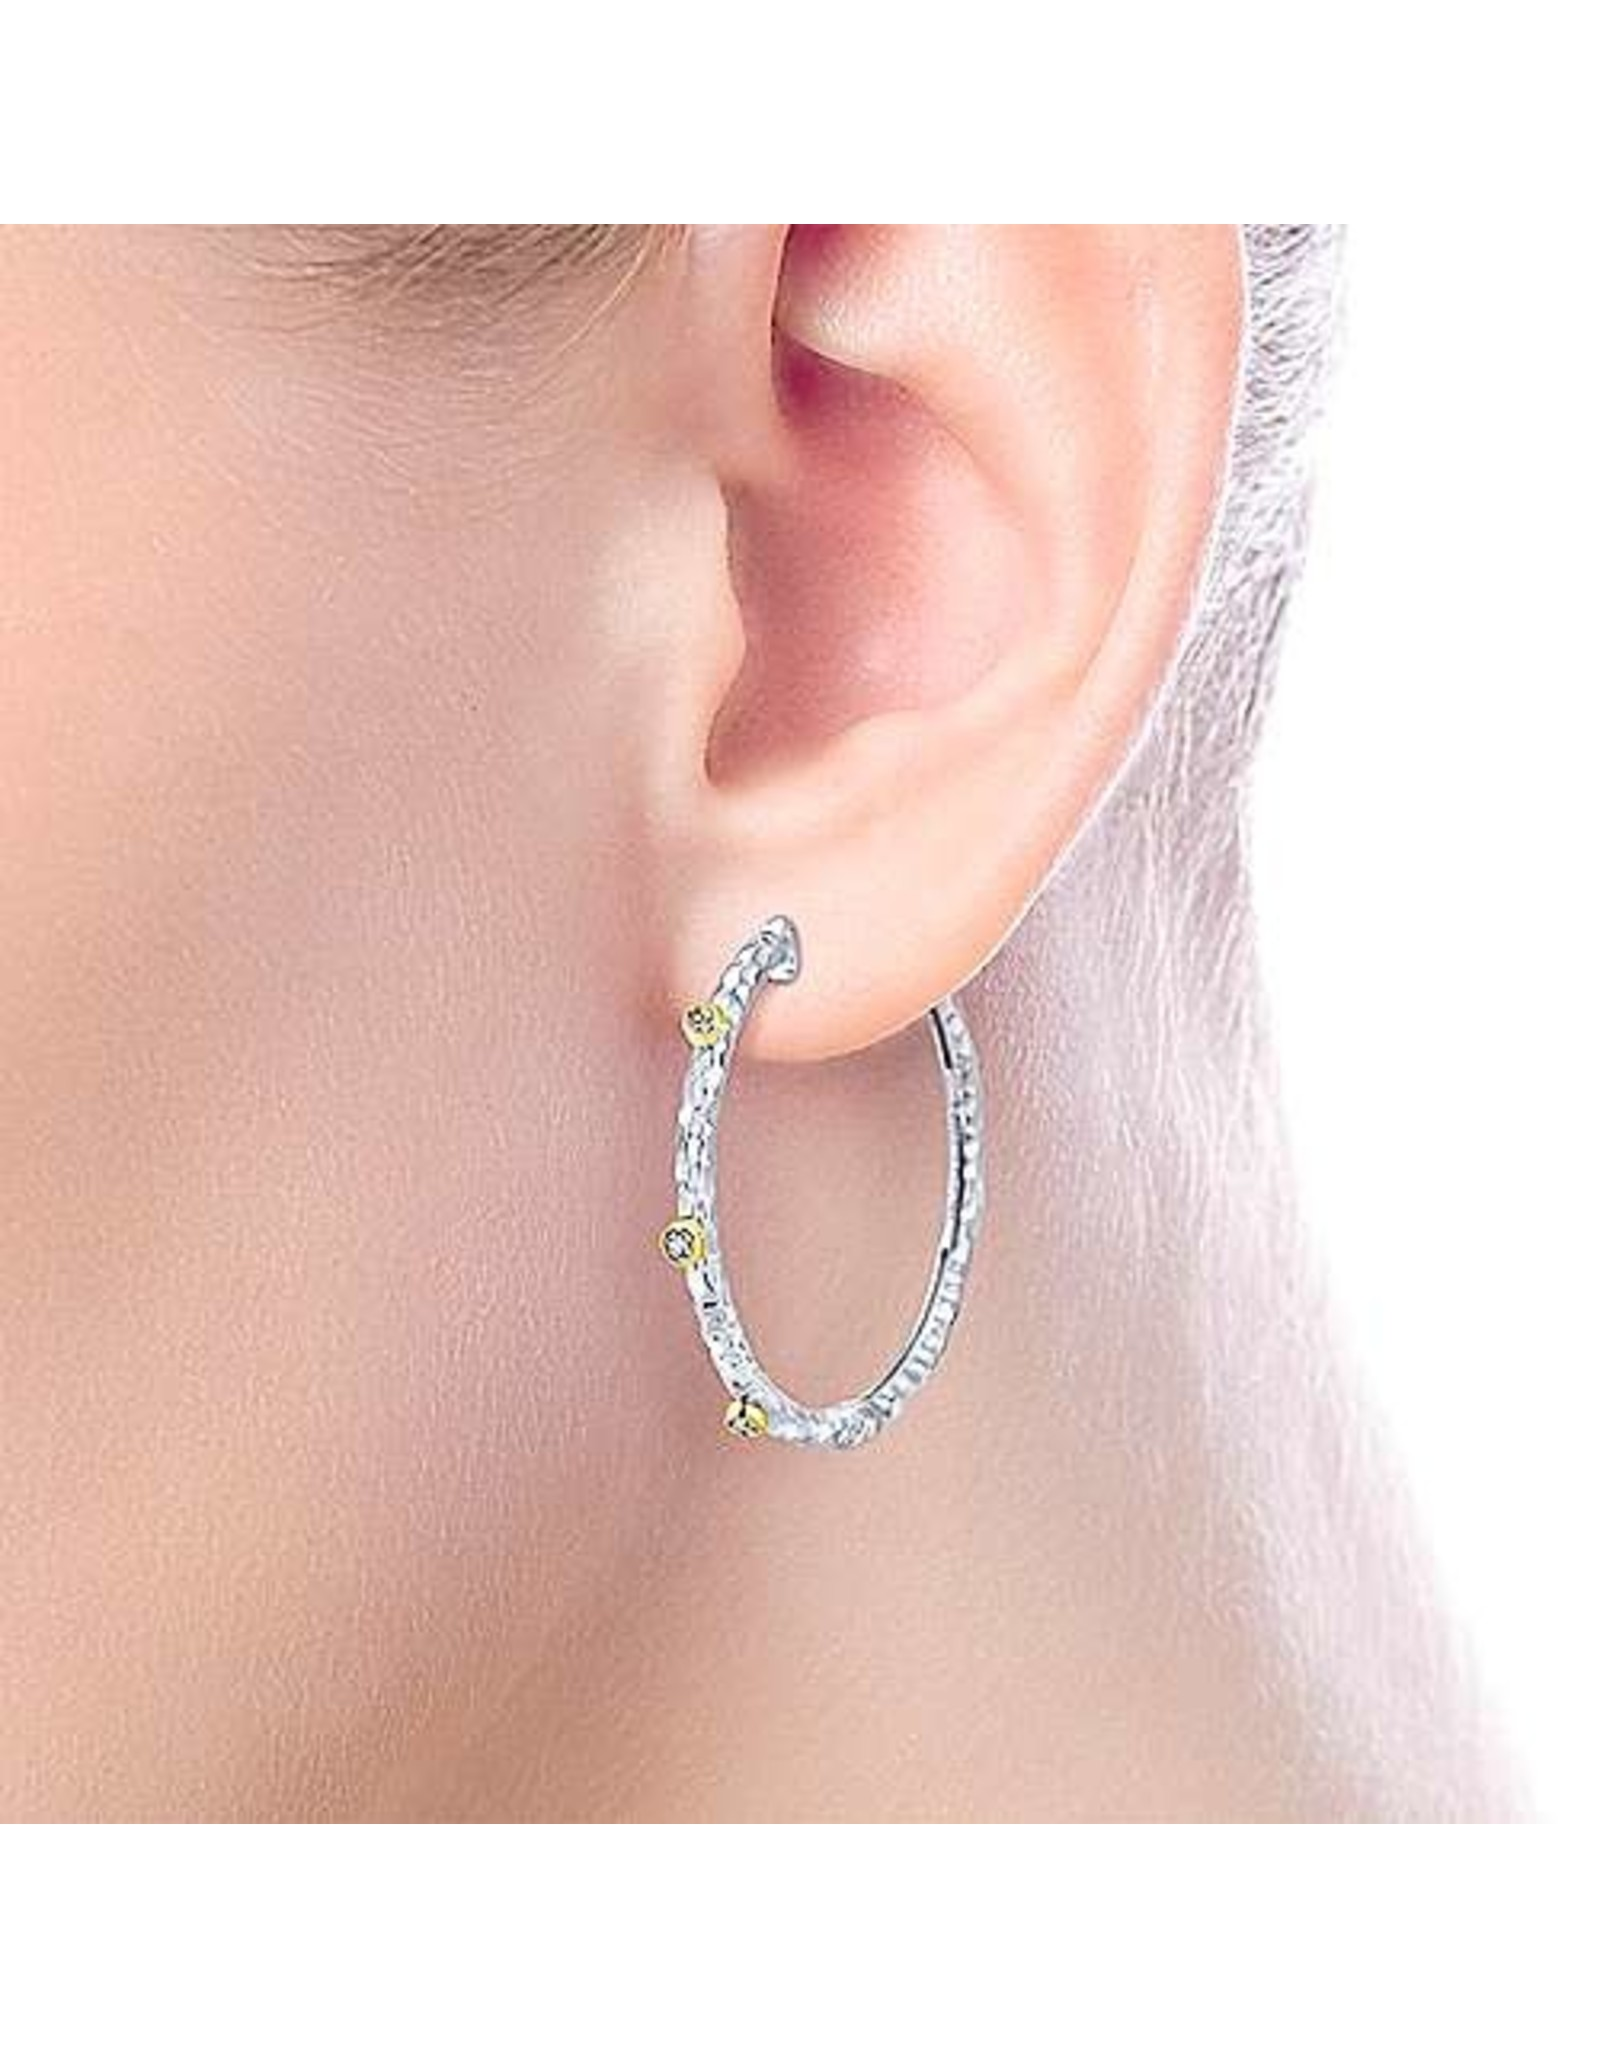 925 & 18K Yellow Gold Hammered Hoop Earrings, D: 0.07cts